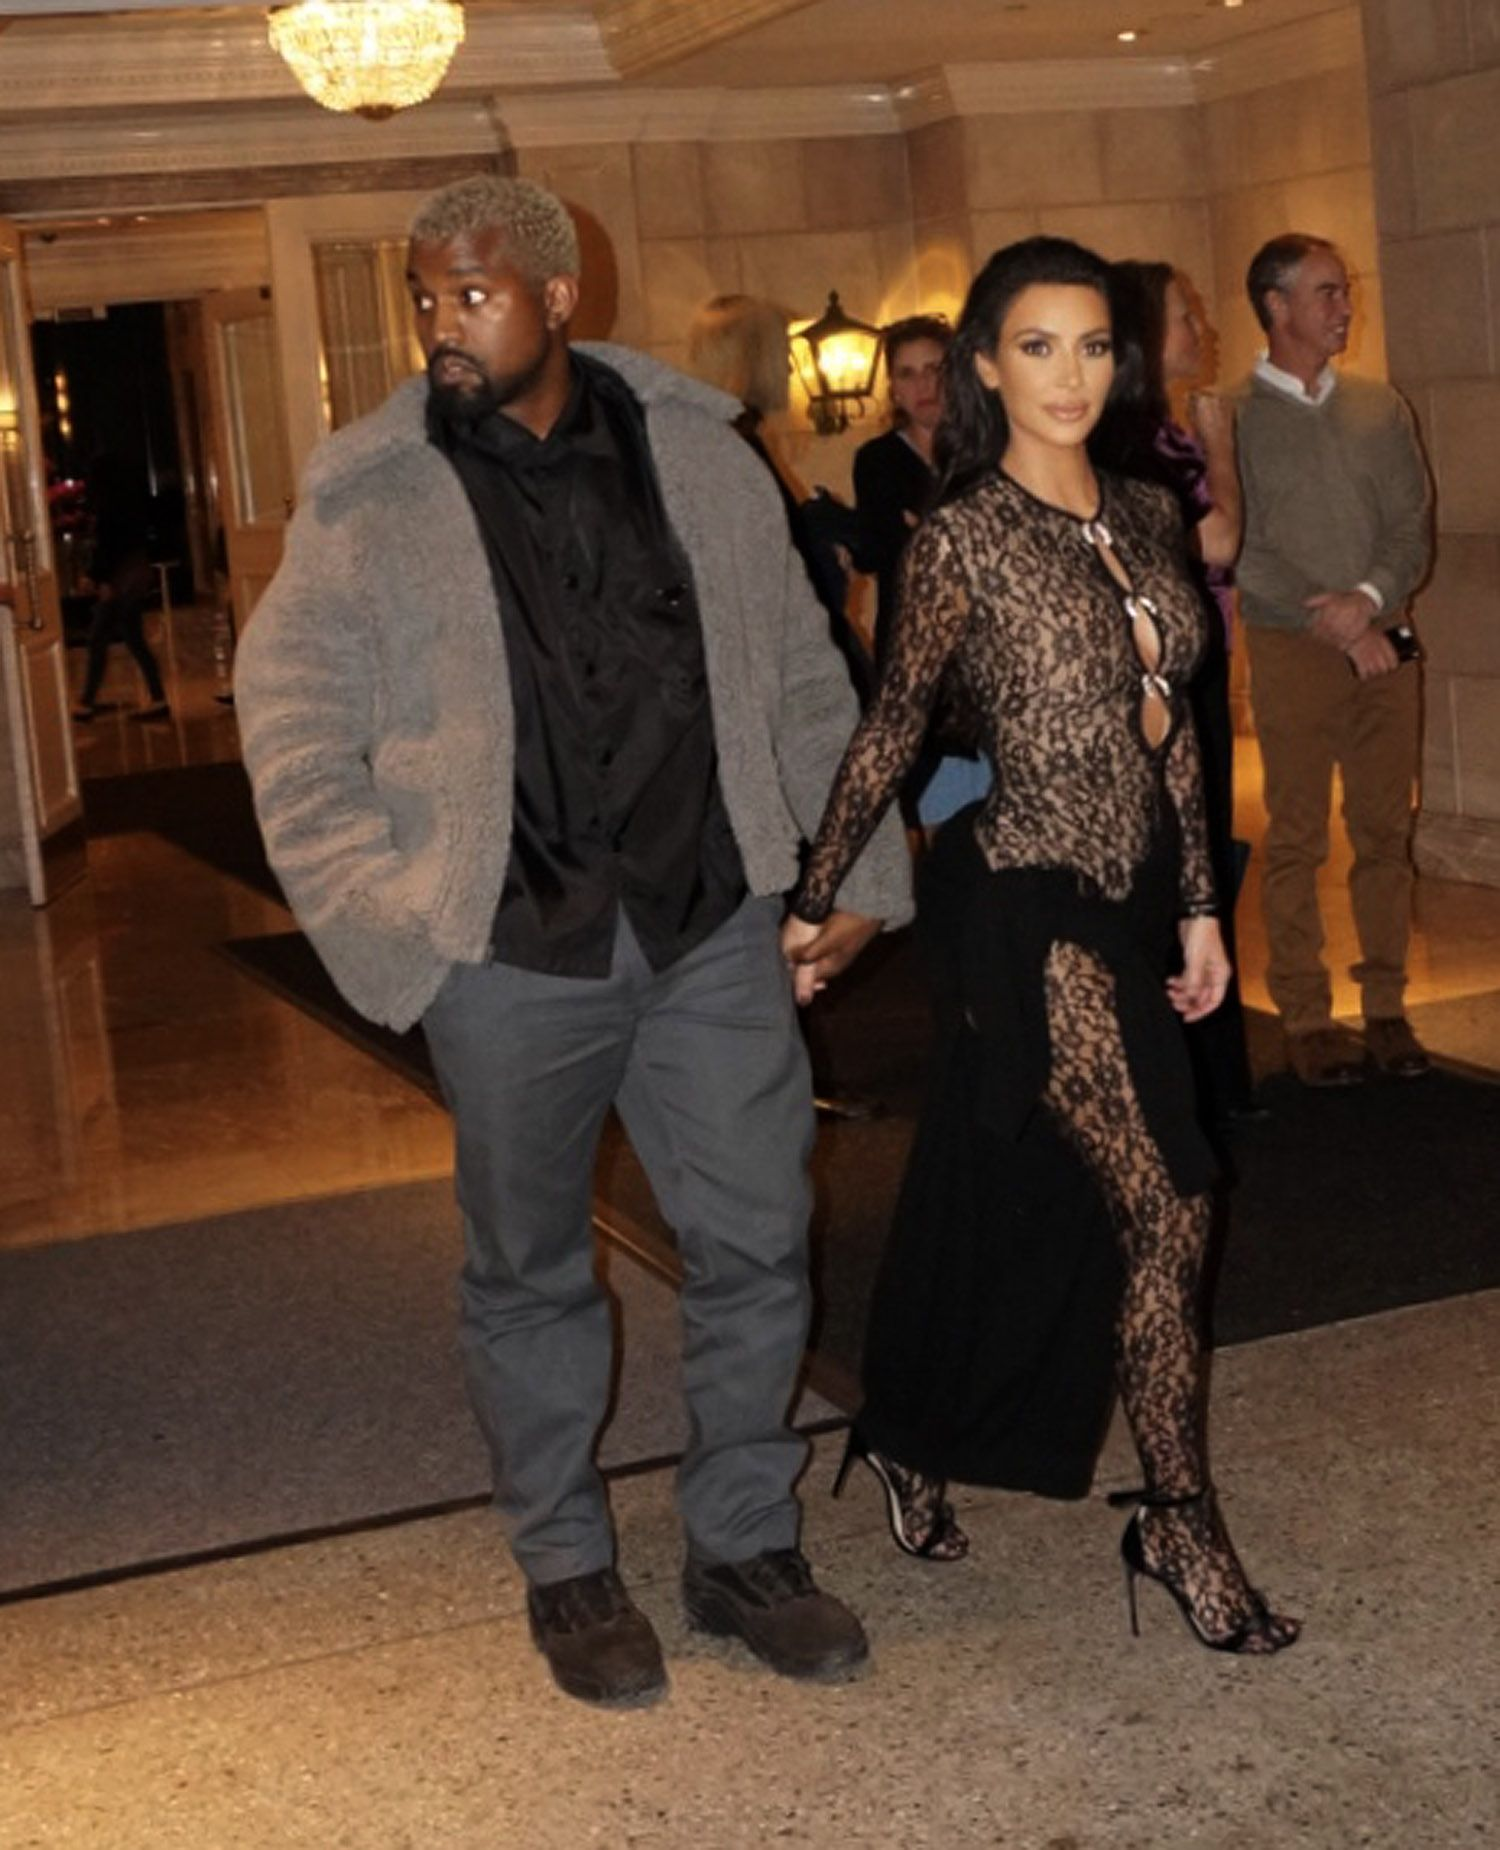 c1e72c12444a Kim Kardashian Wore a Sheer Lace Bodysuit by Alexander Wang to John  Legend's Party